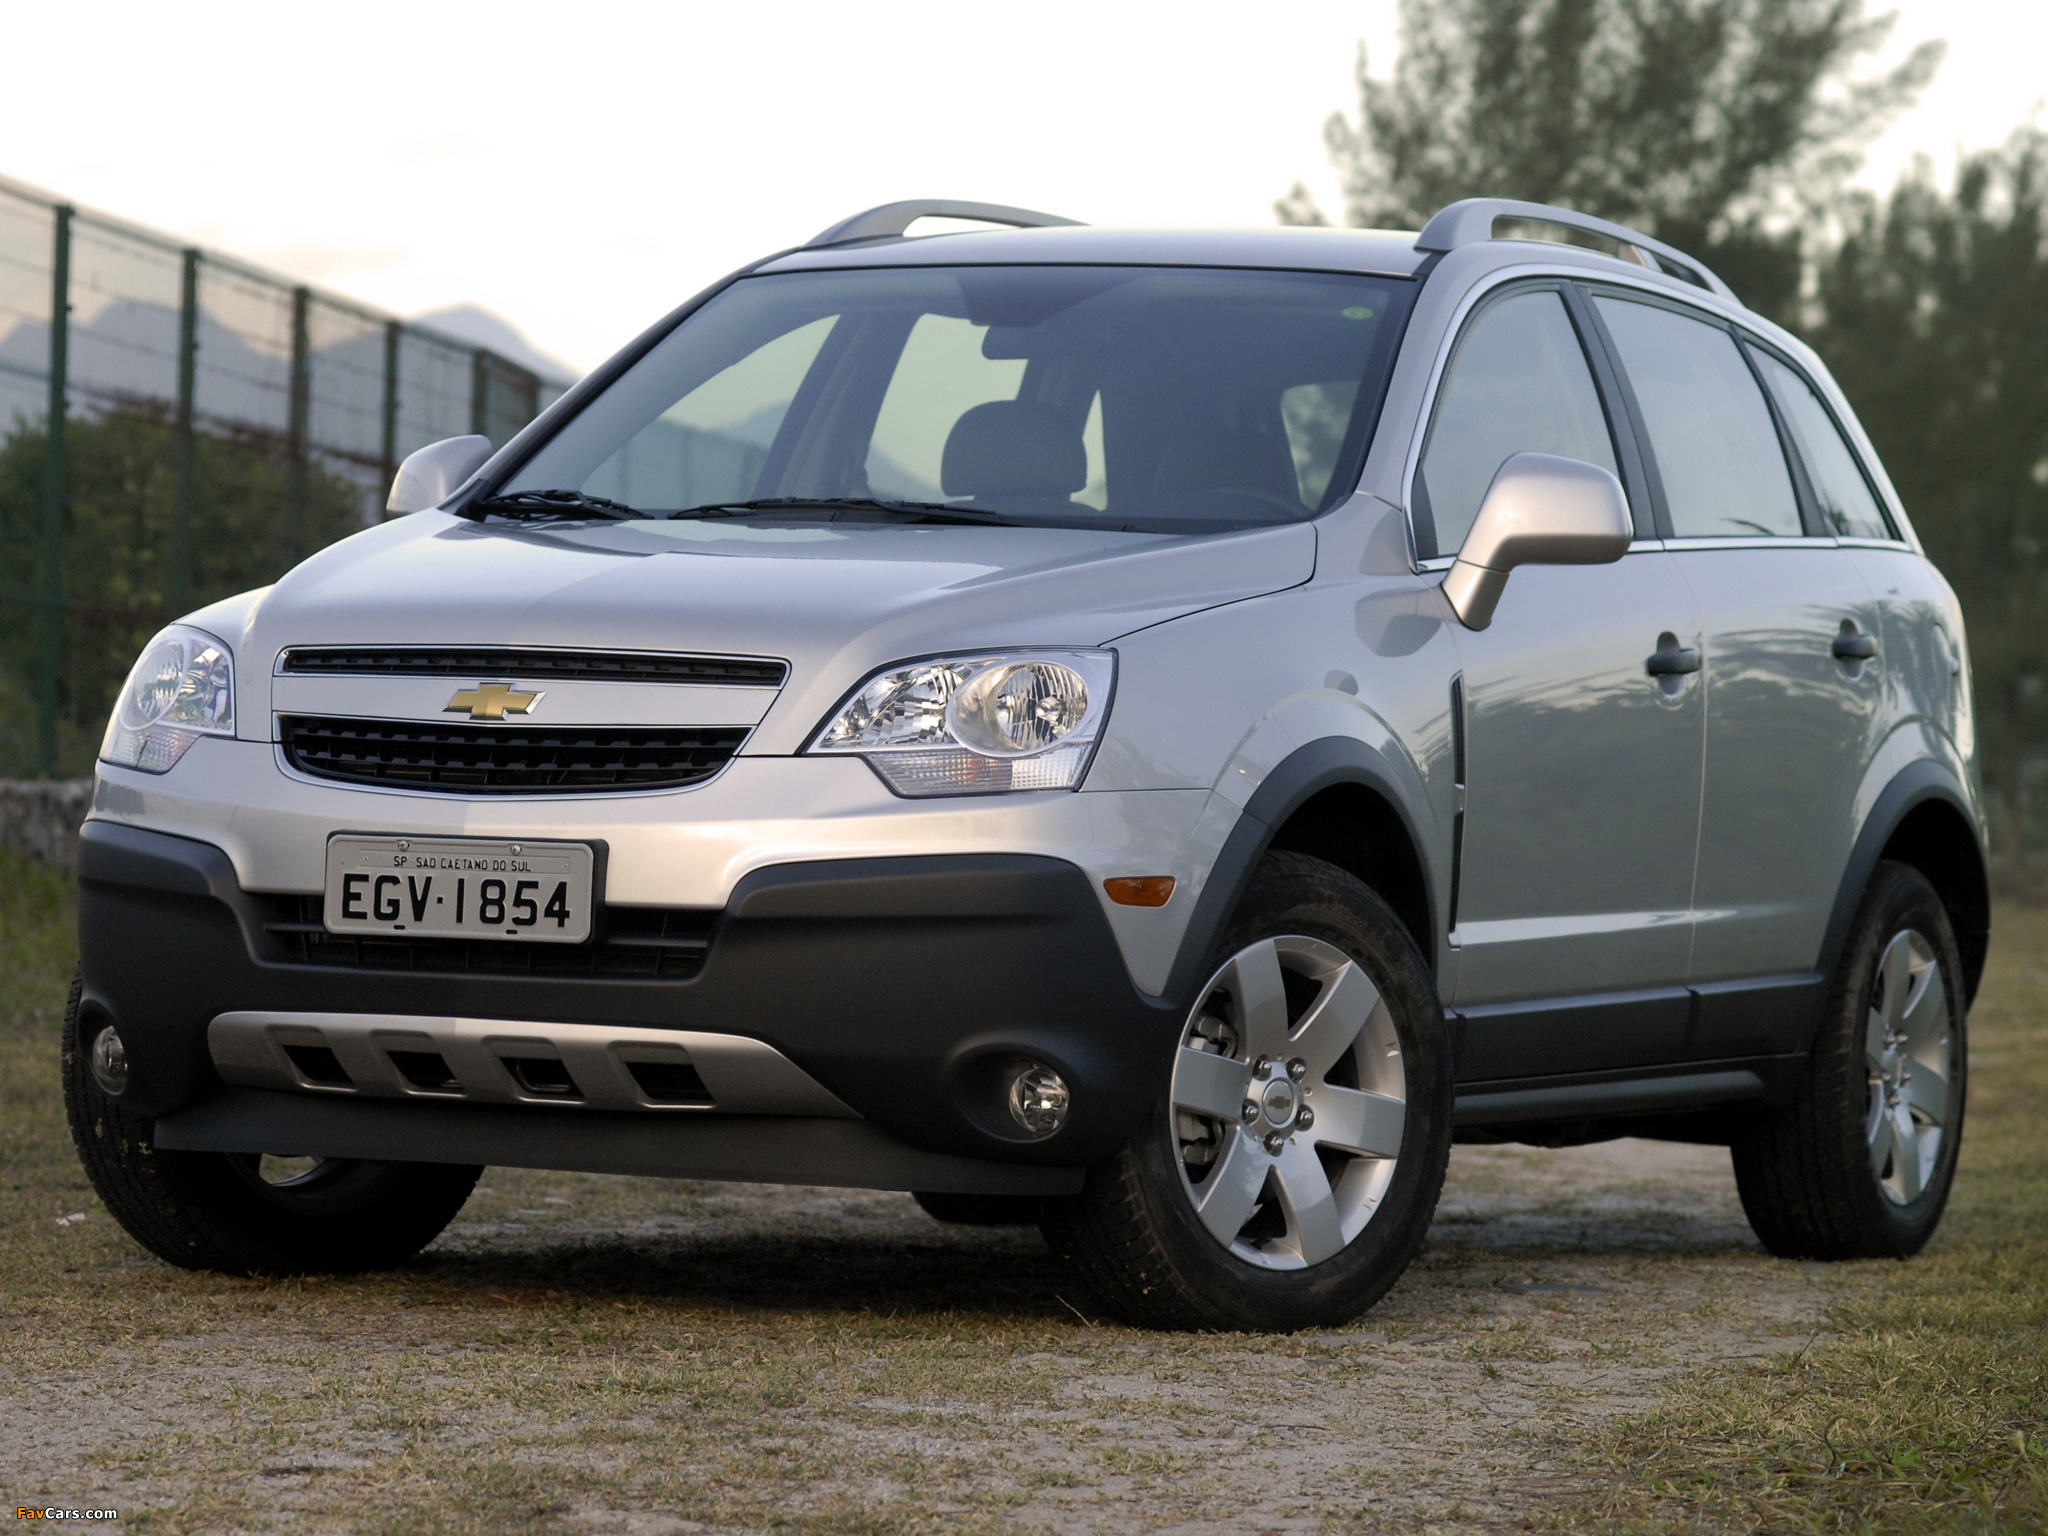 chevrolet captiva 2008 wallpaper #4